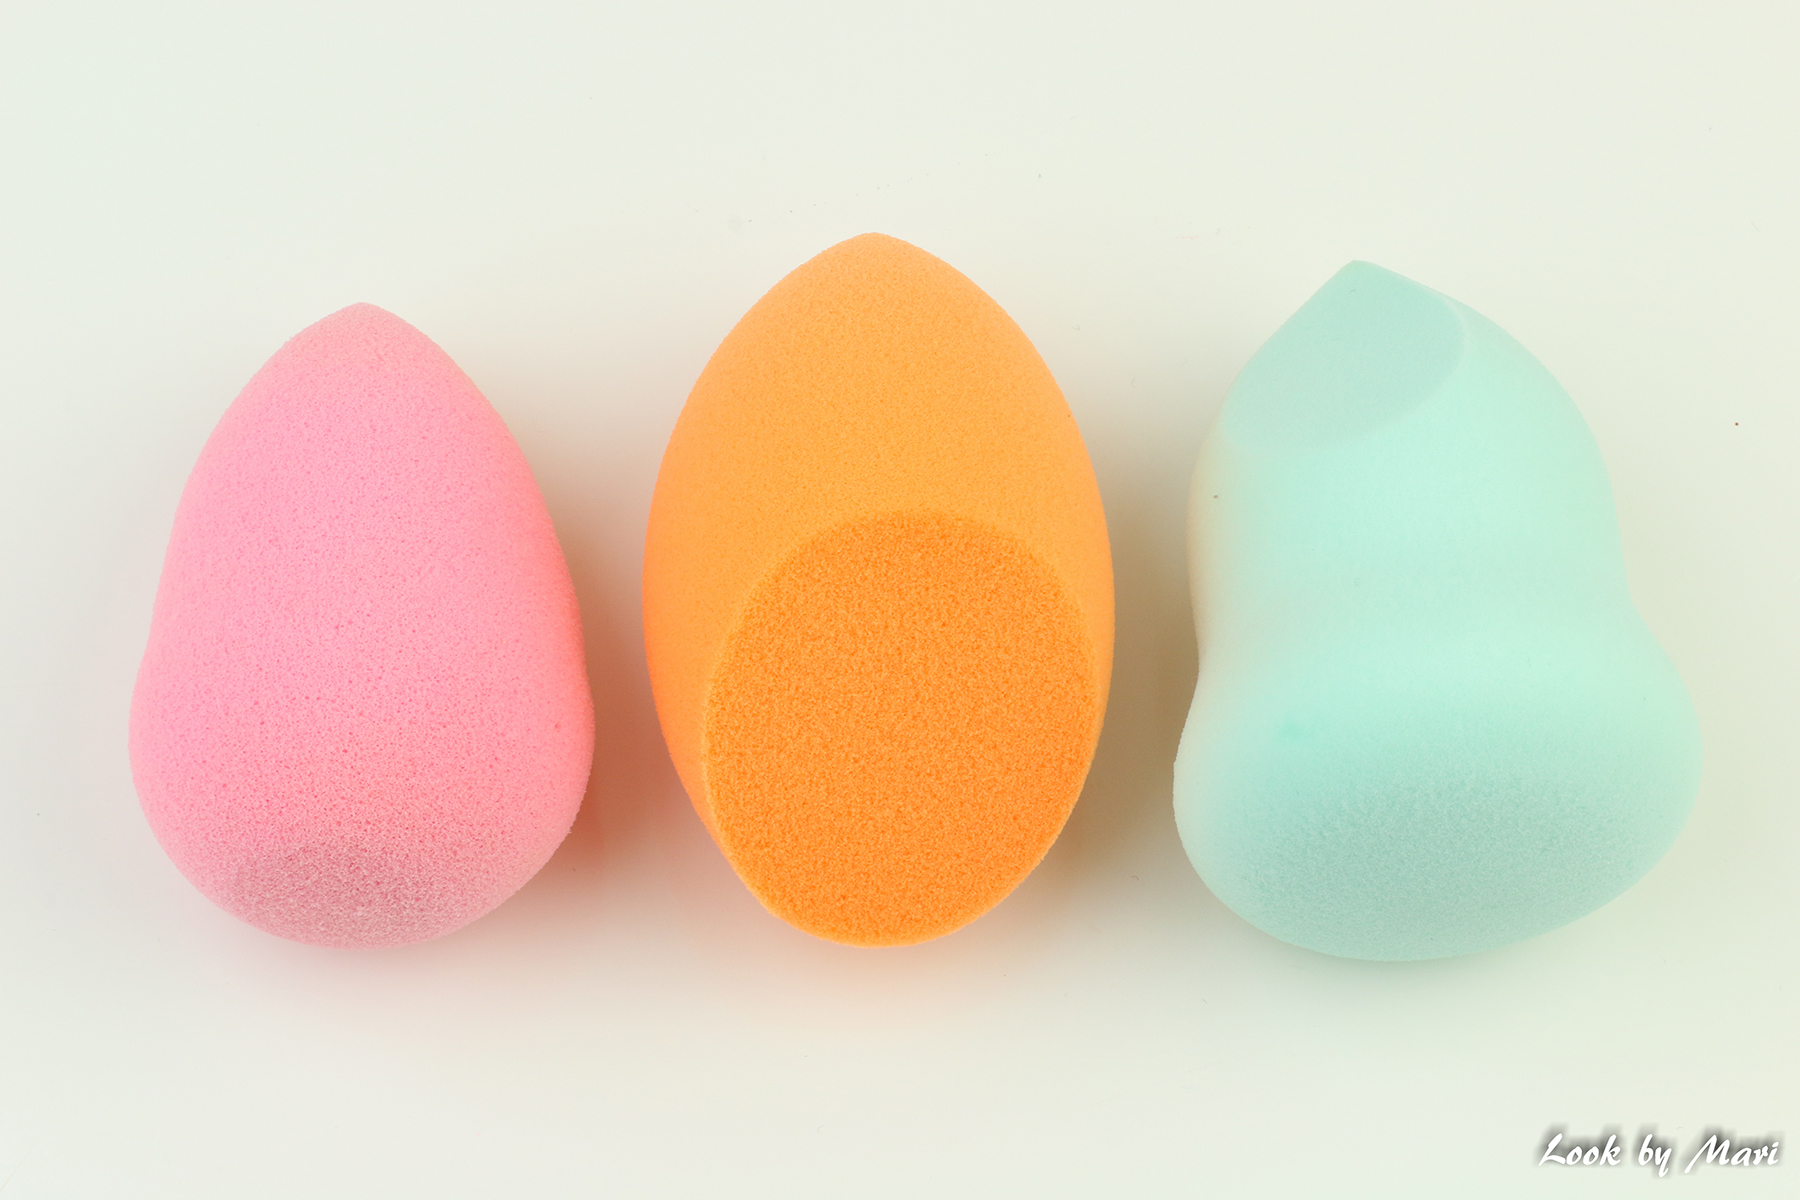 6 the best beauty sponges comparison beautyblender duper real techniques nanshy kokemuksia review